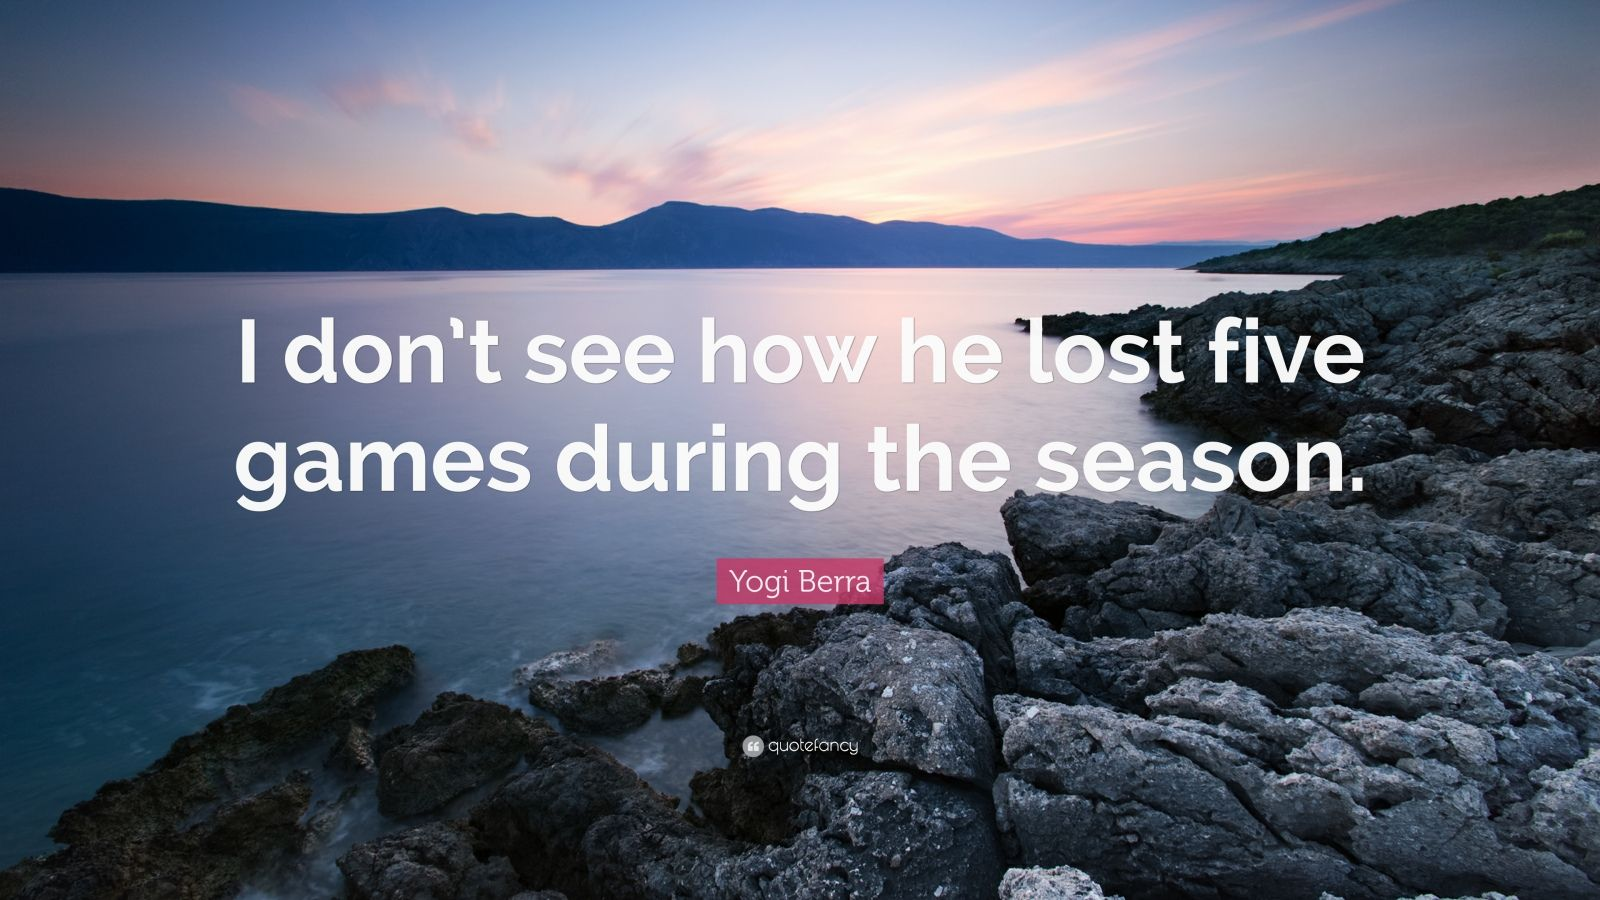 """Yogi Berra Quote: """"I don't see how he lost five games during the season."""""""